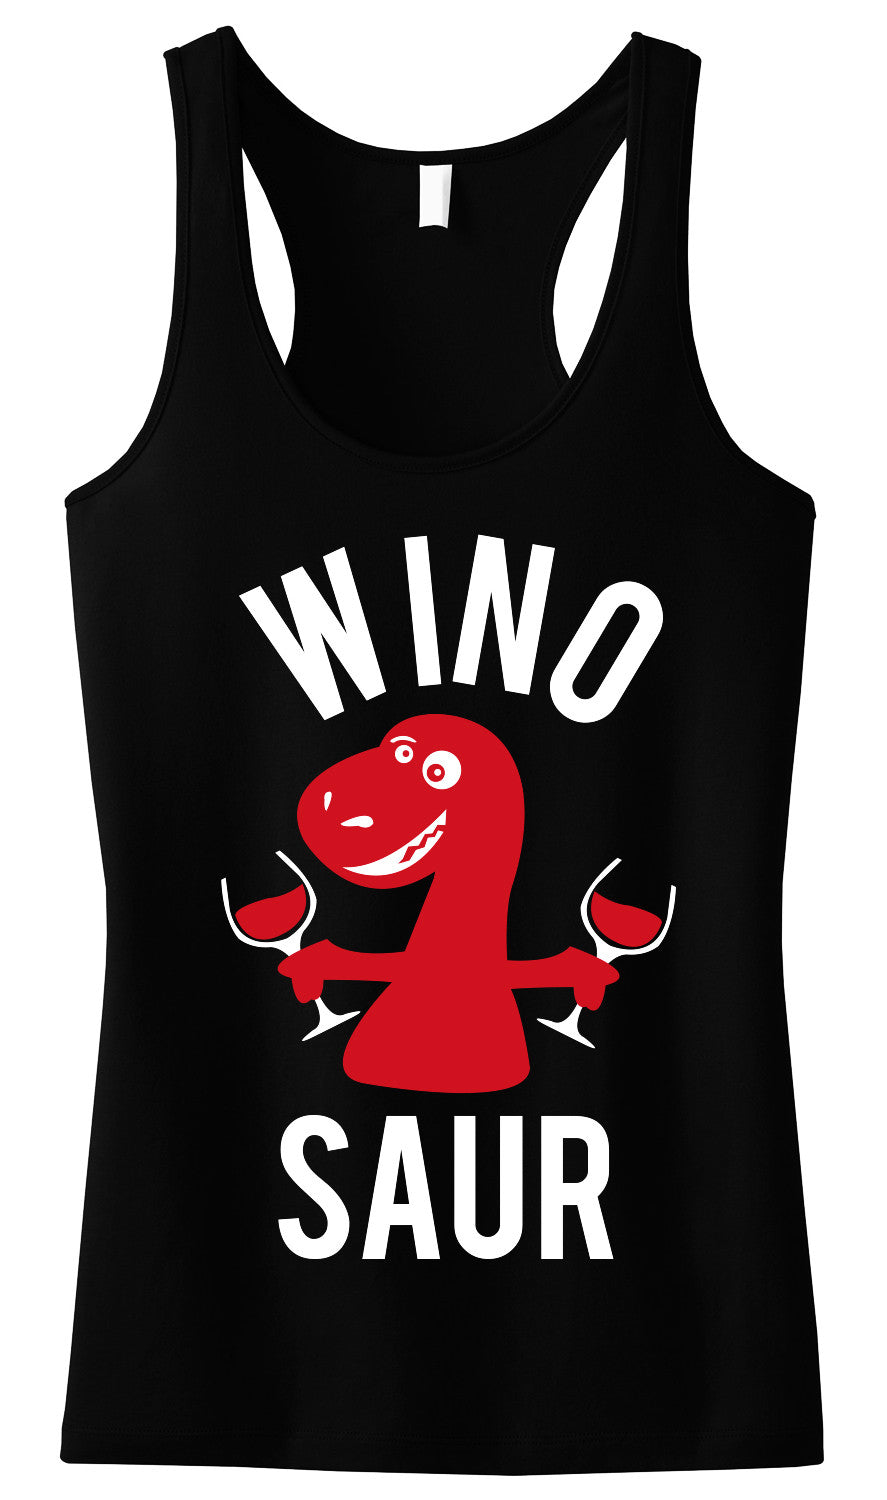 WINO SAUR Black Tank Top